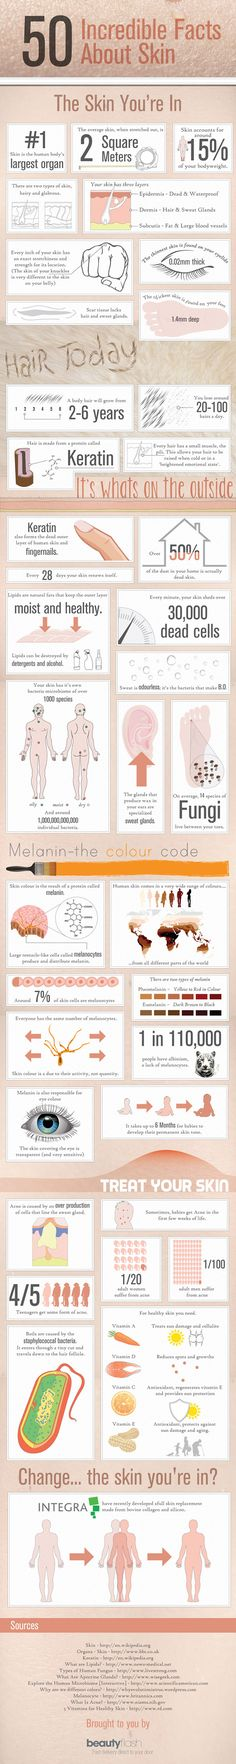 50 Incredible Facts About Skin (Infographic)   DrVita